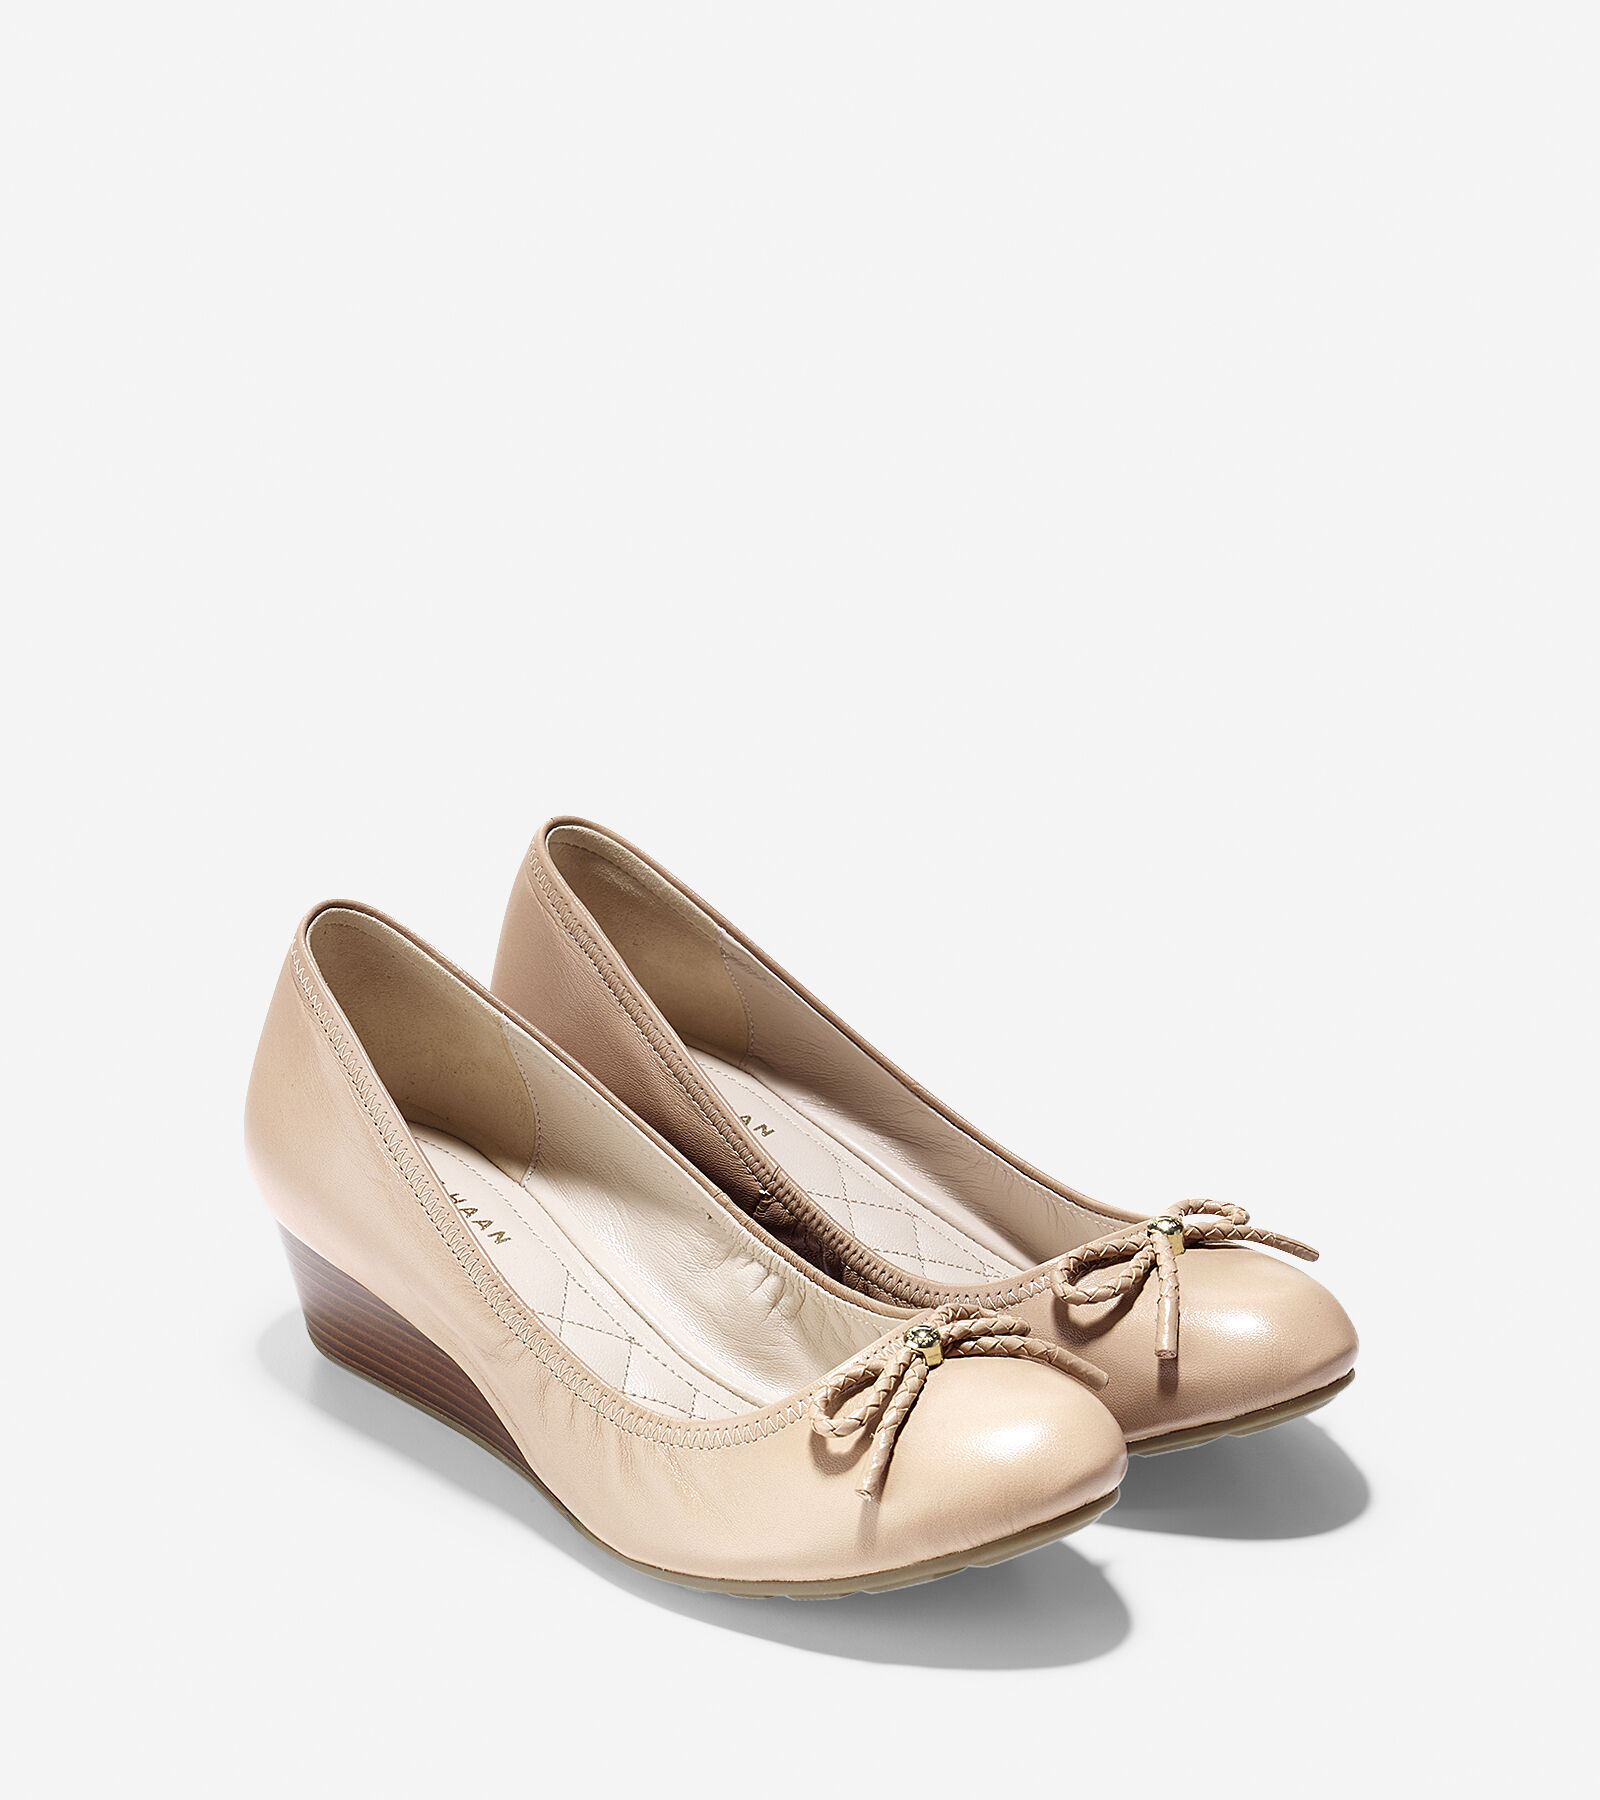 Cole Haan Tali Grand Lace Wedges YWSJPo